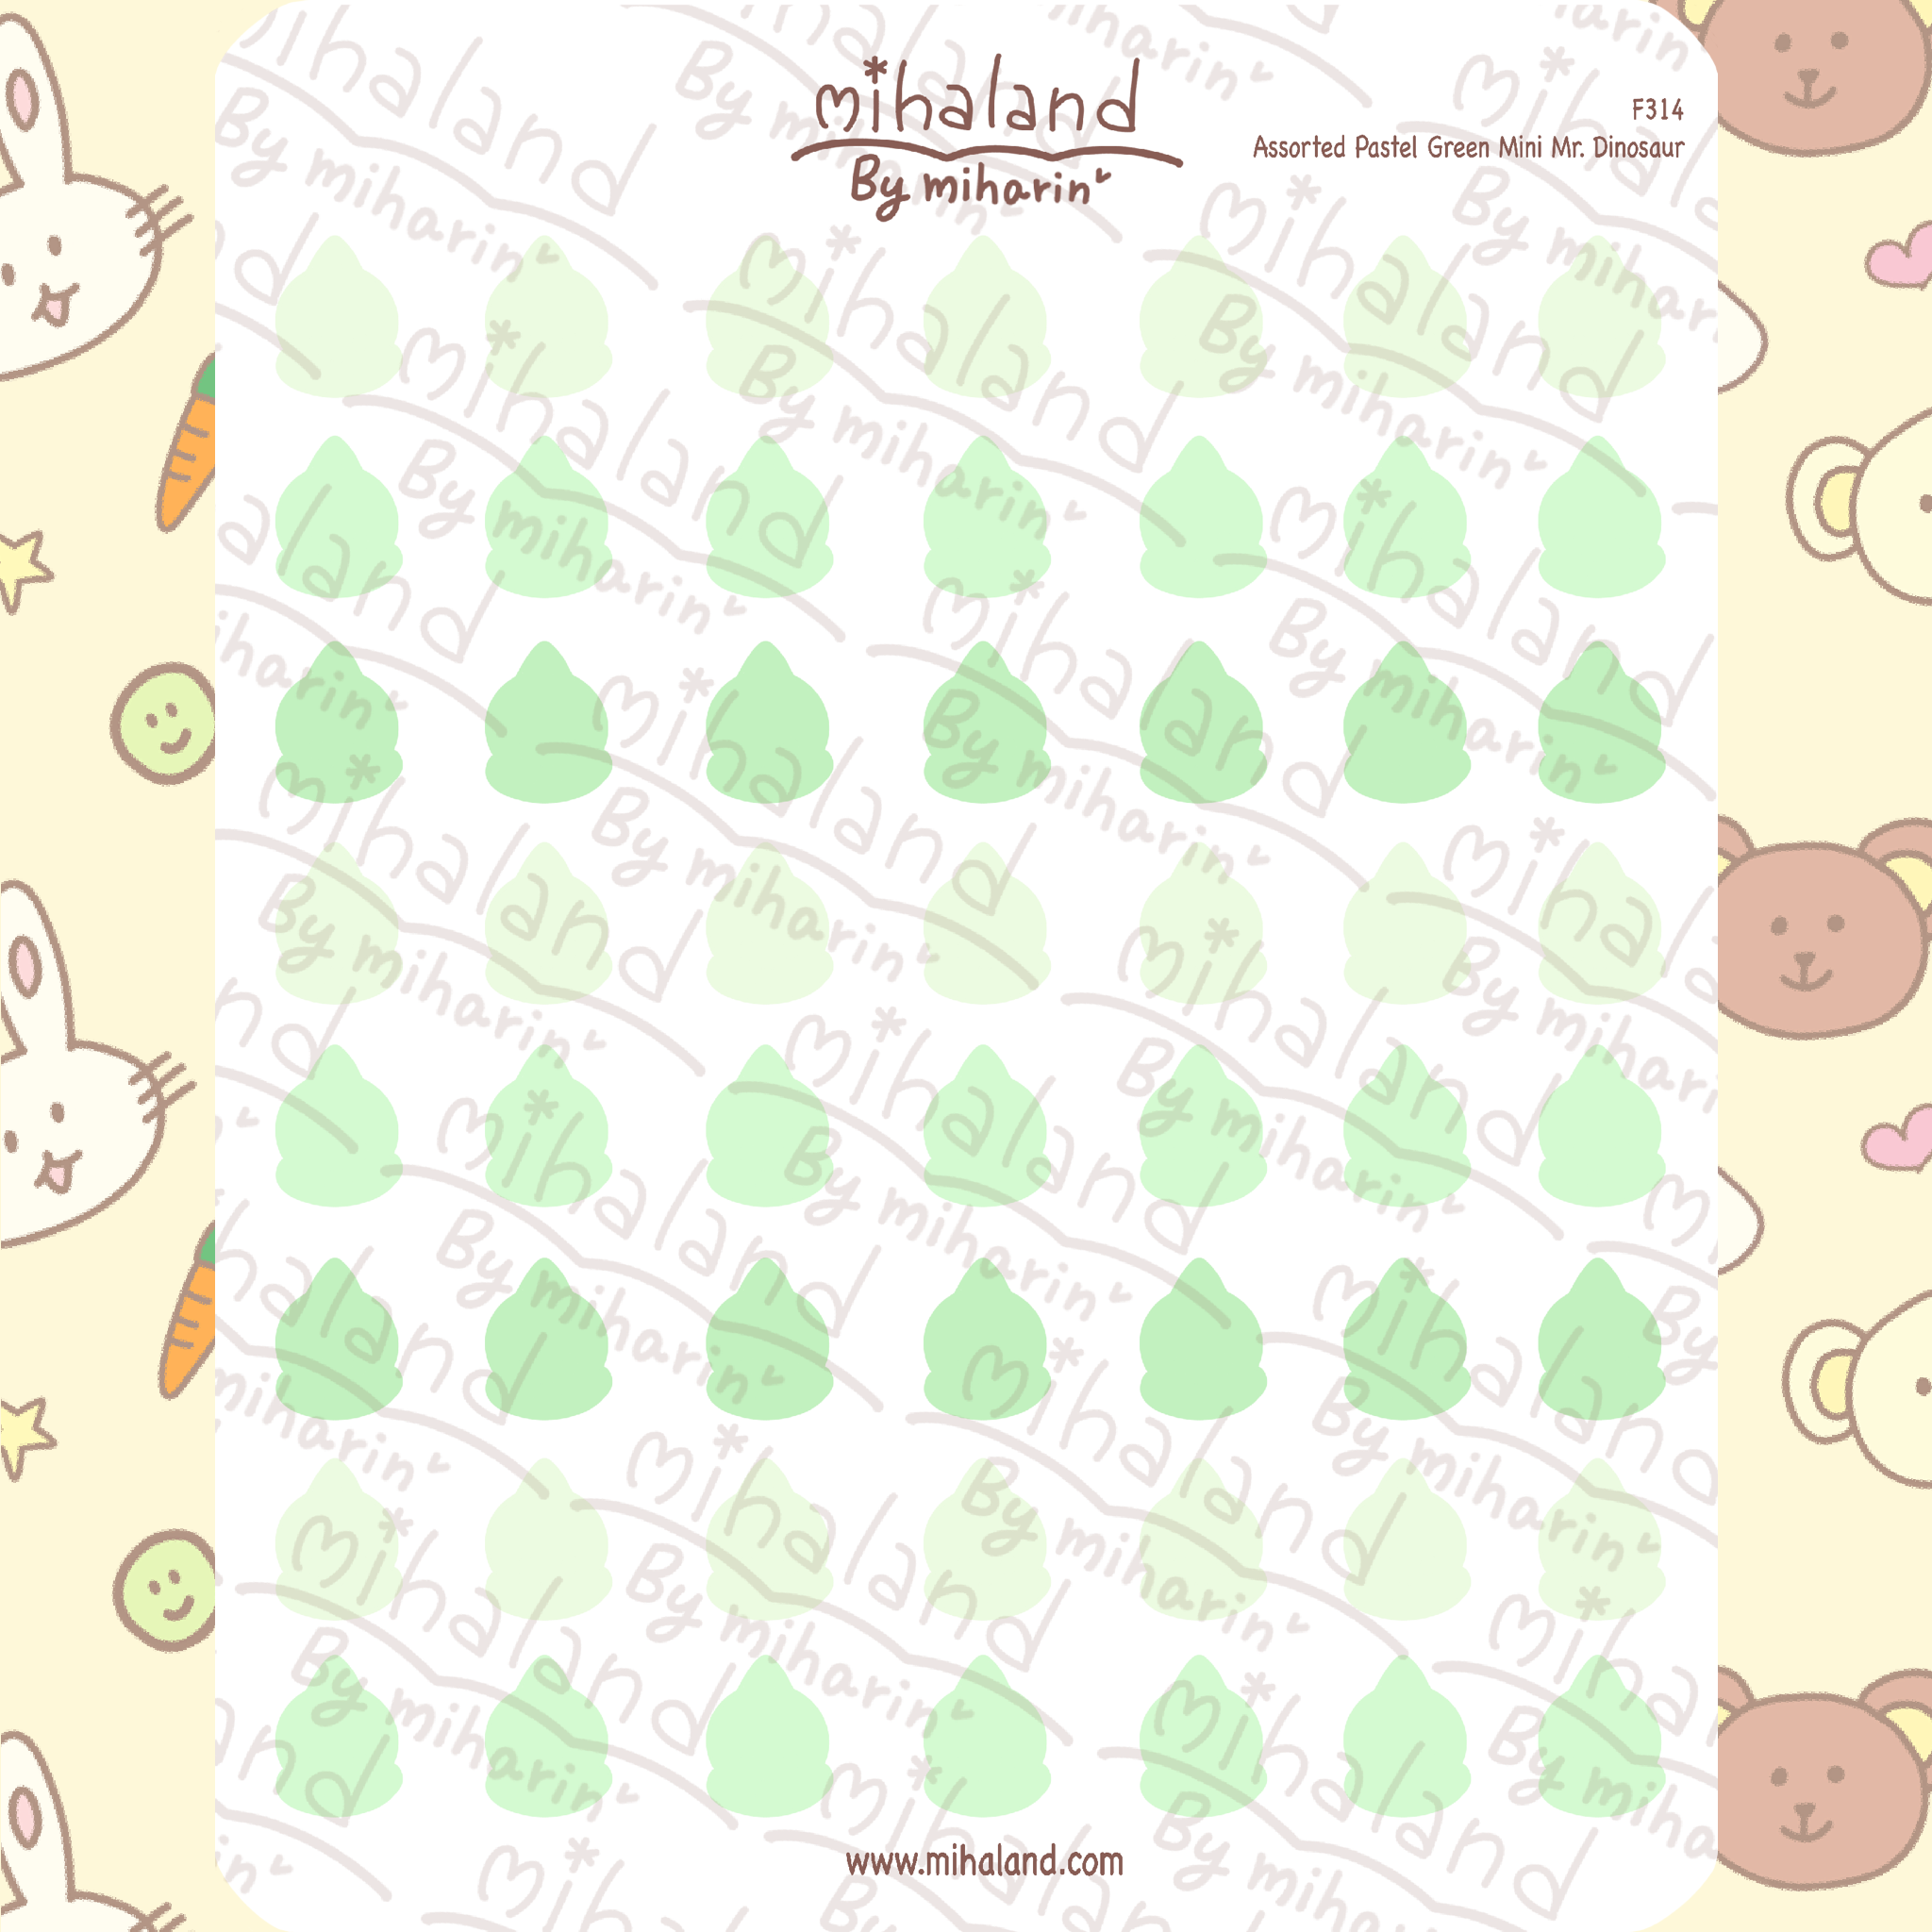 Assorted Pastel Green Mini Mr. Dinosaur Planner Stickers (F314)